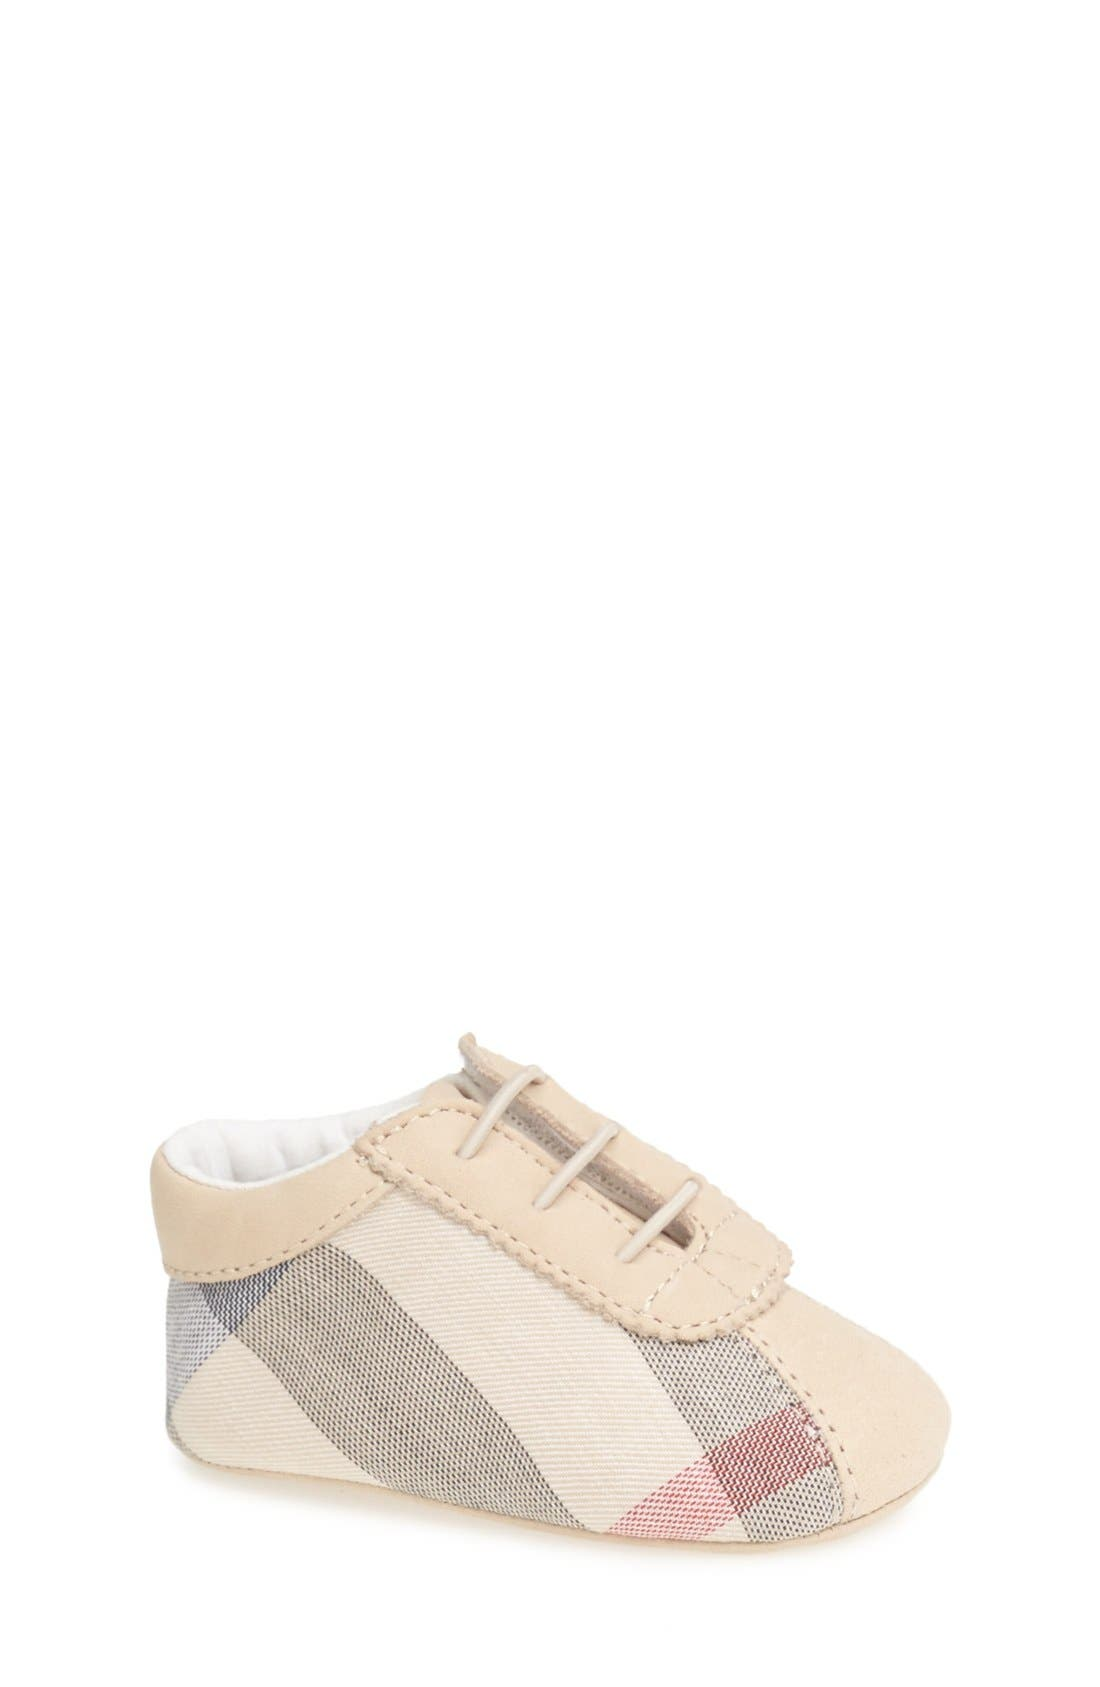 Burberry Bosco Crib Shoe Baby Nordstrom